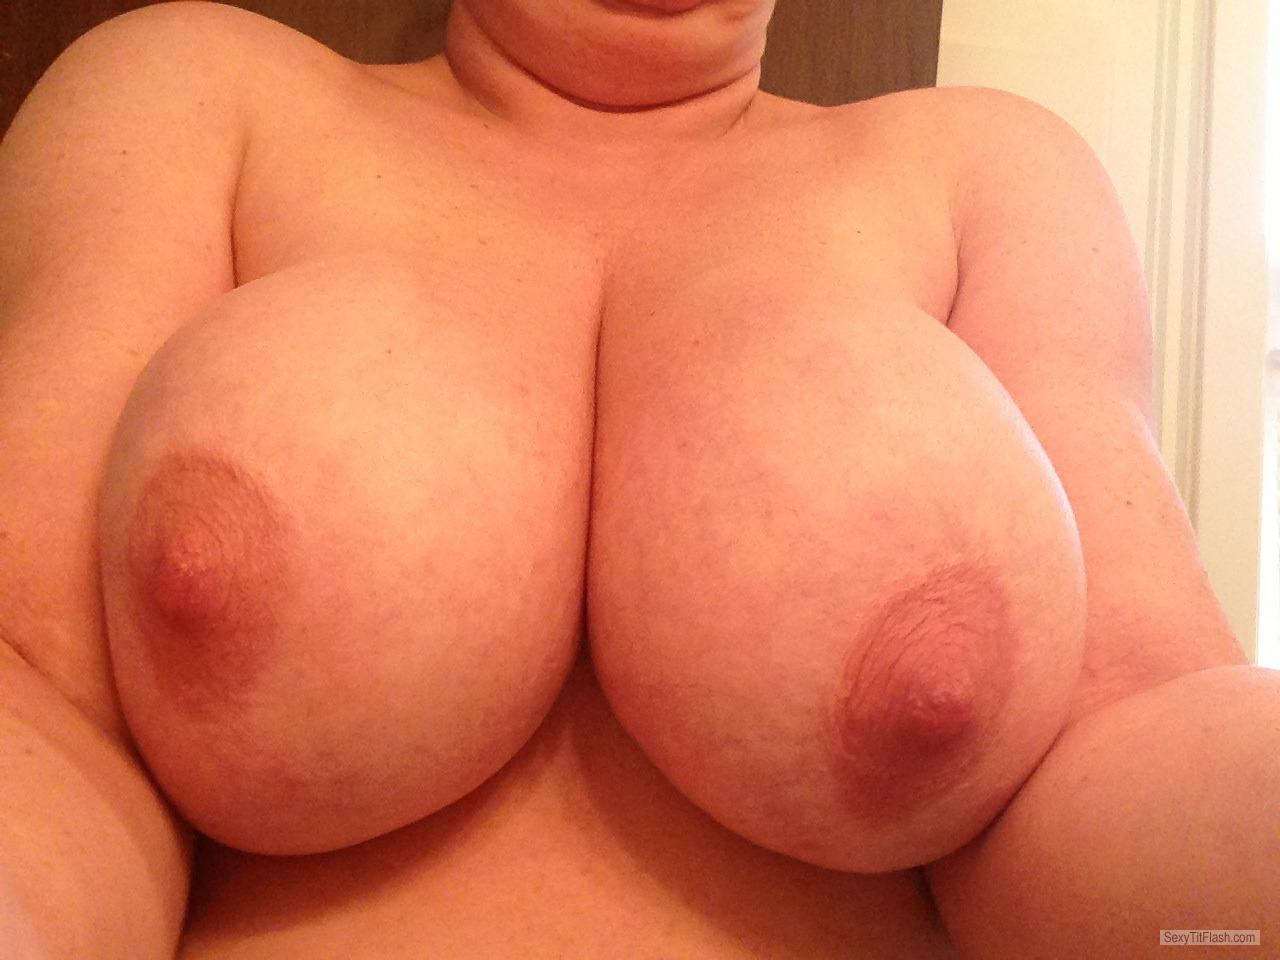 Very big Tits Of My Wife Selfie by Jen